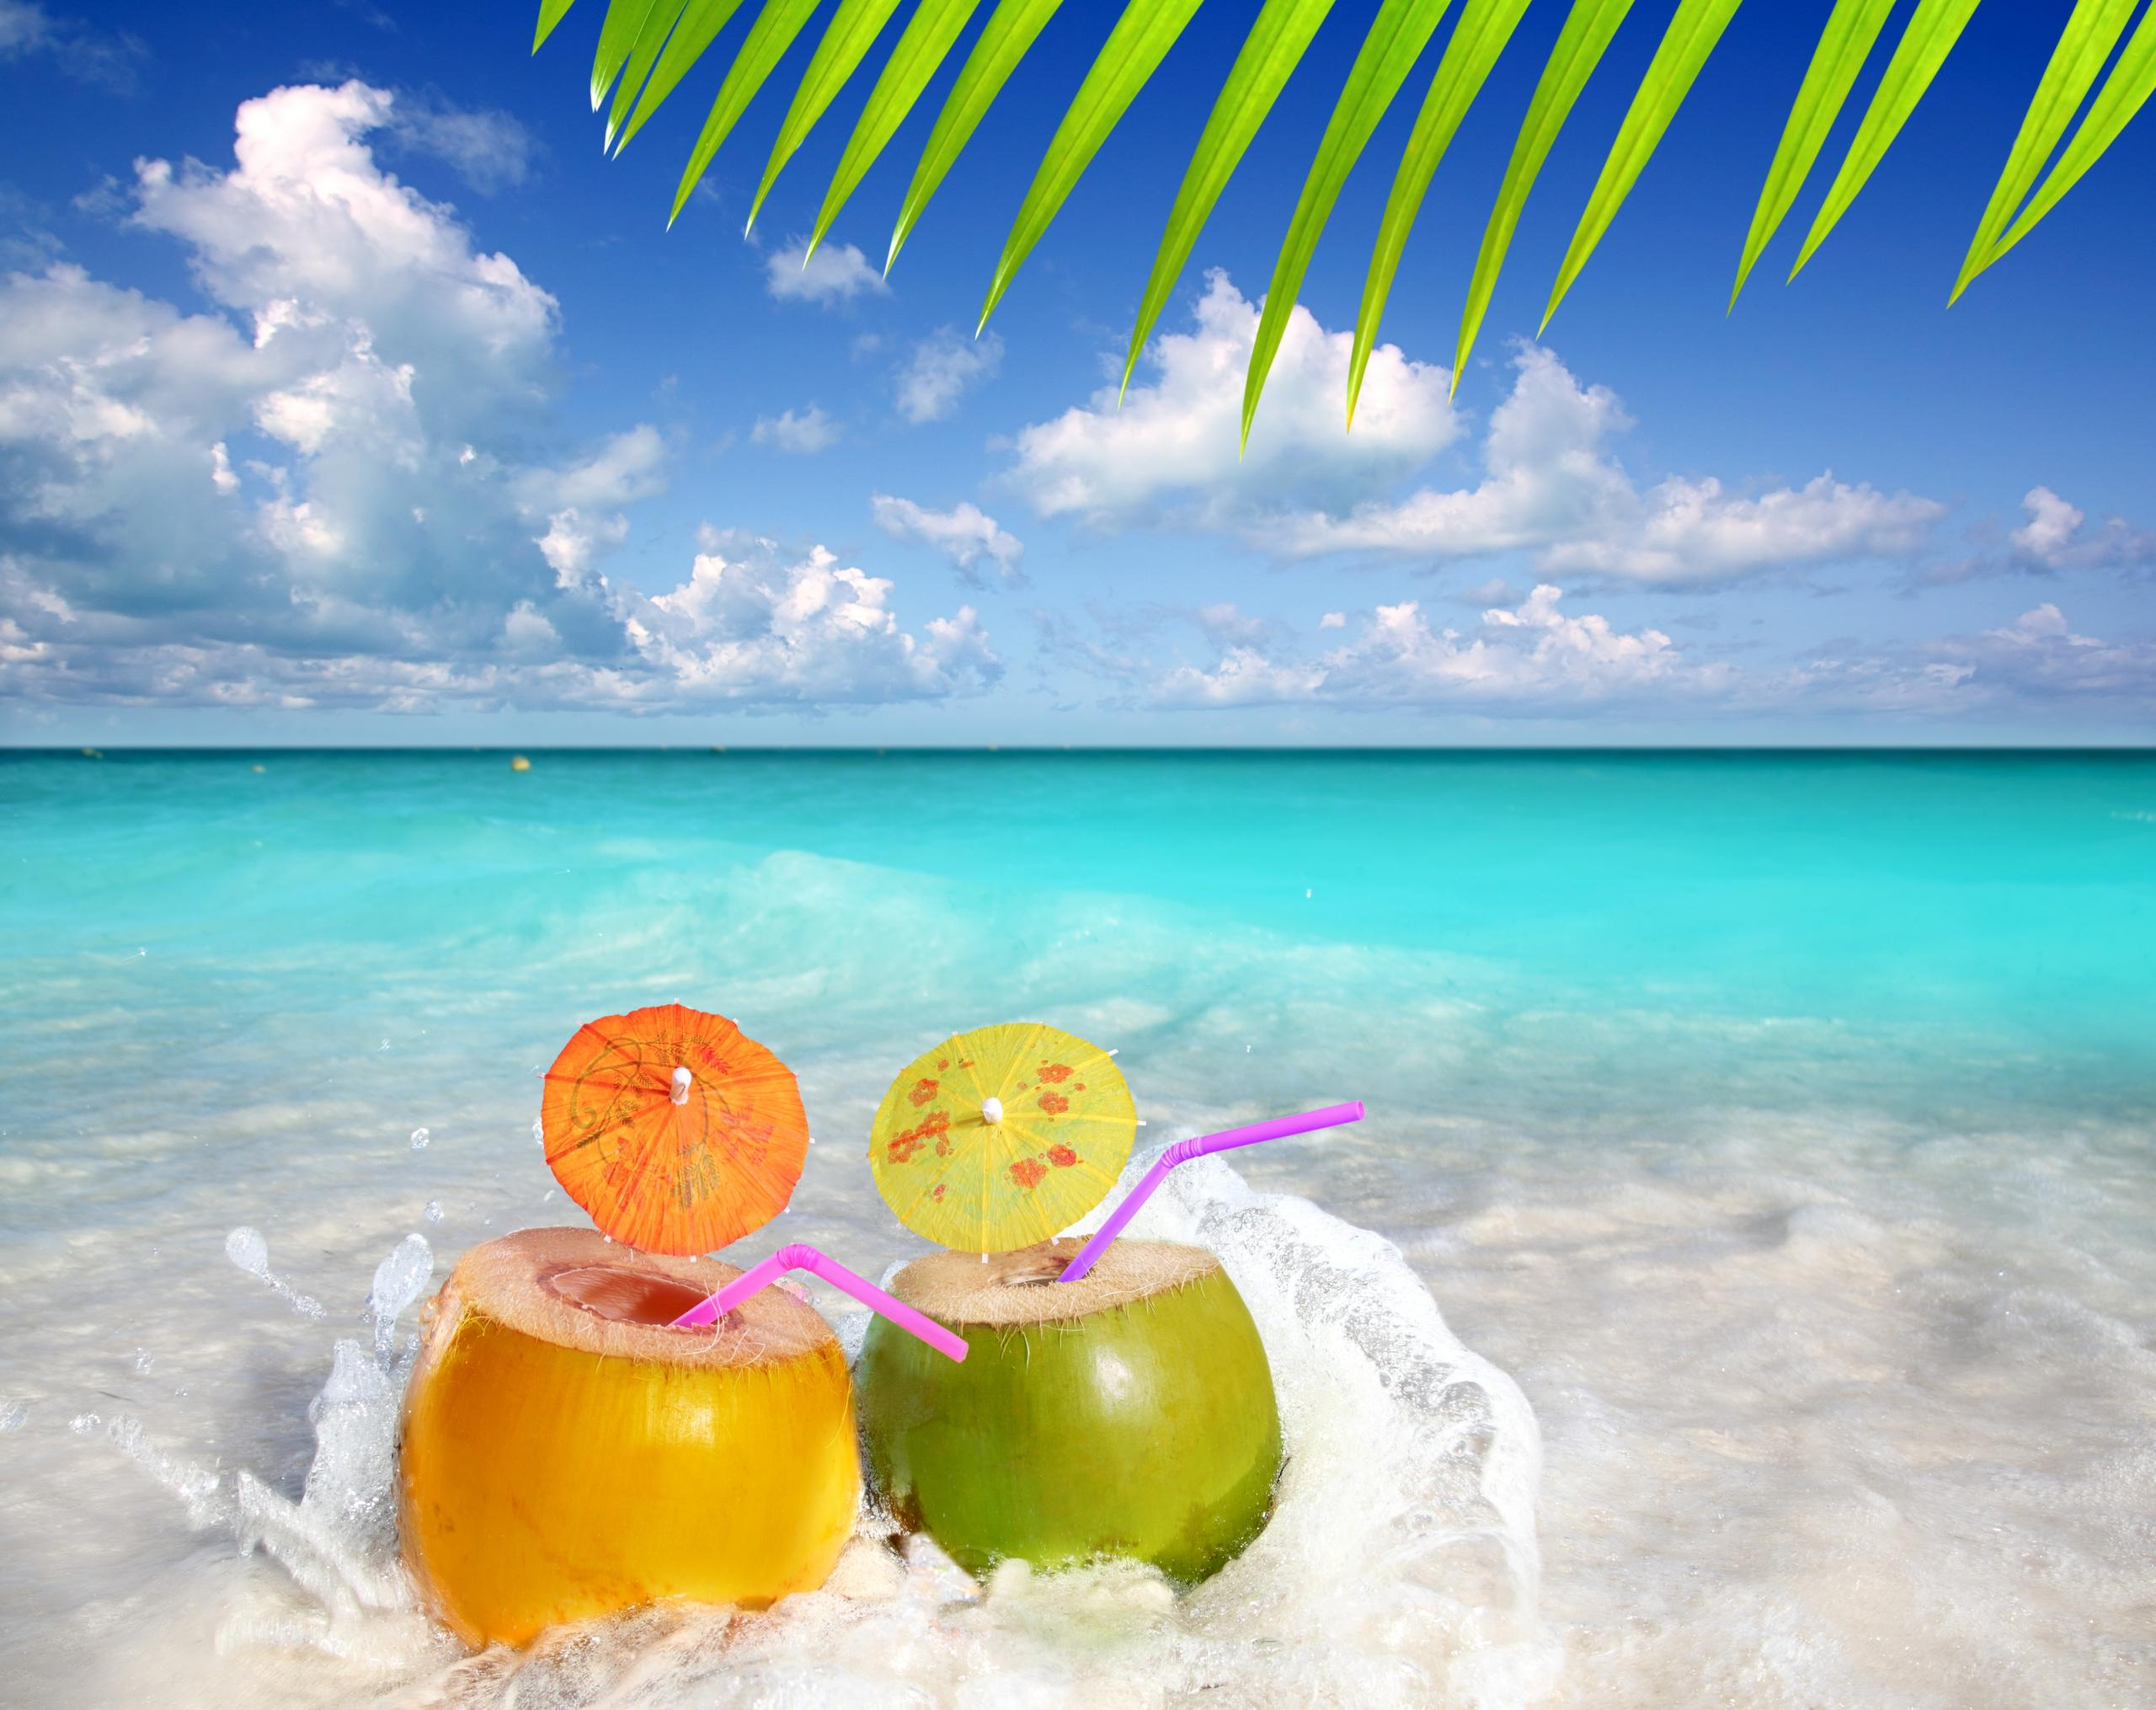 Free Download Summer Wallpaper Summer Time And Lifestyle On Pinterest Summer 2560x2030 For Your Desktop Mobile Tablet Explore 64 Summertime Desktop Wallpapers Free Desktop Wallpaper Free Summer Wallpaper Backgrounds Feel free to send us your own. 64 summertime desktop wallpapers